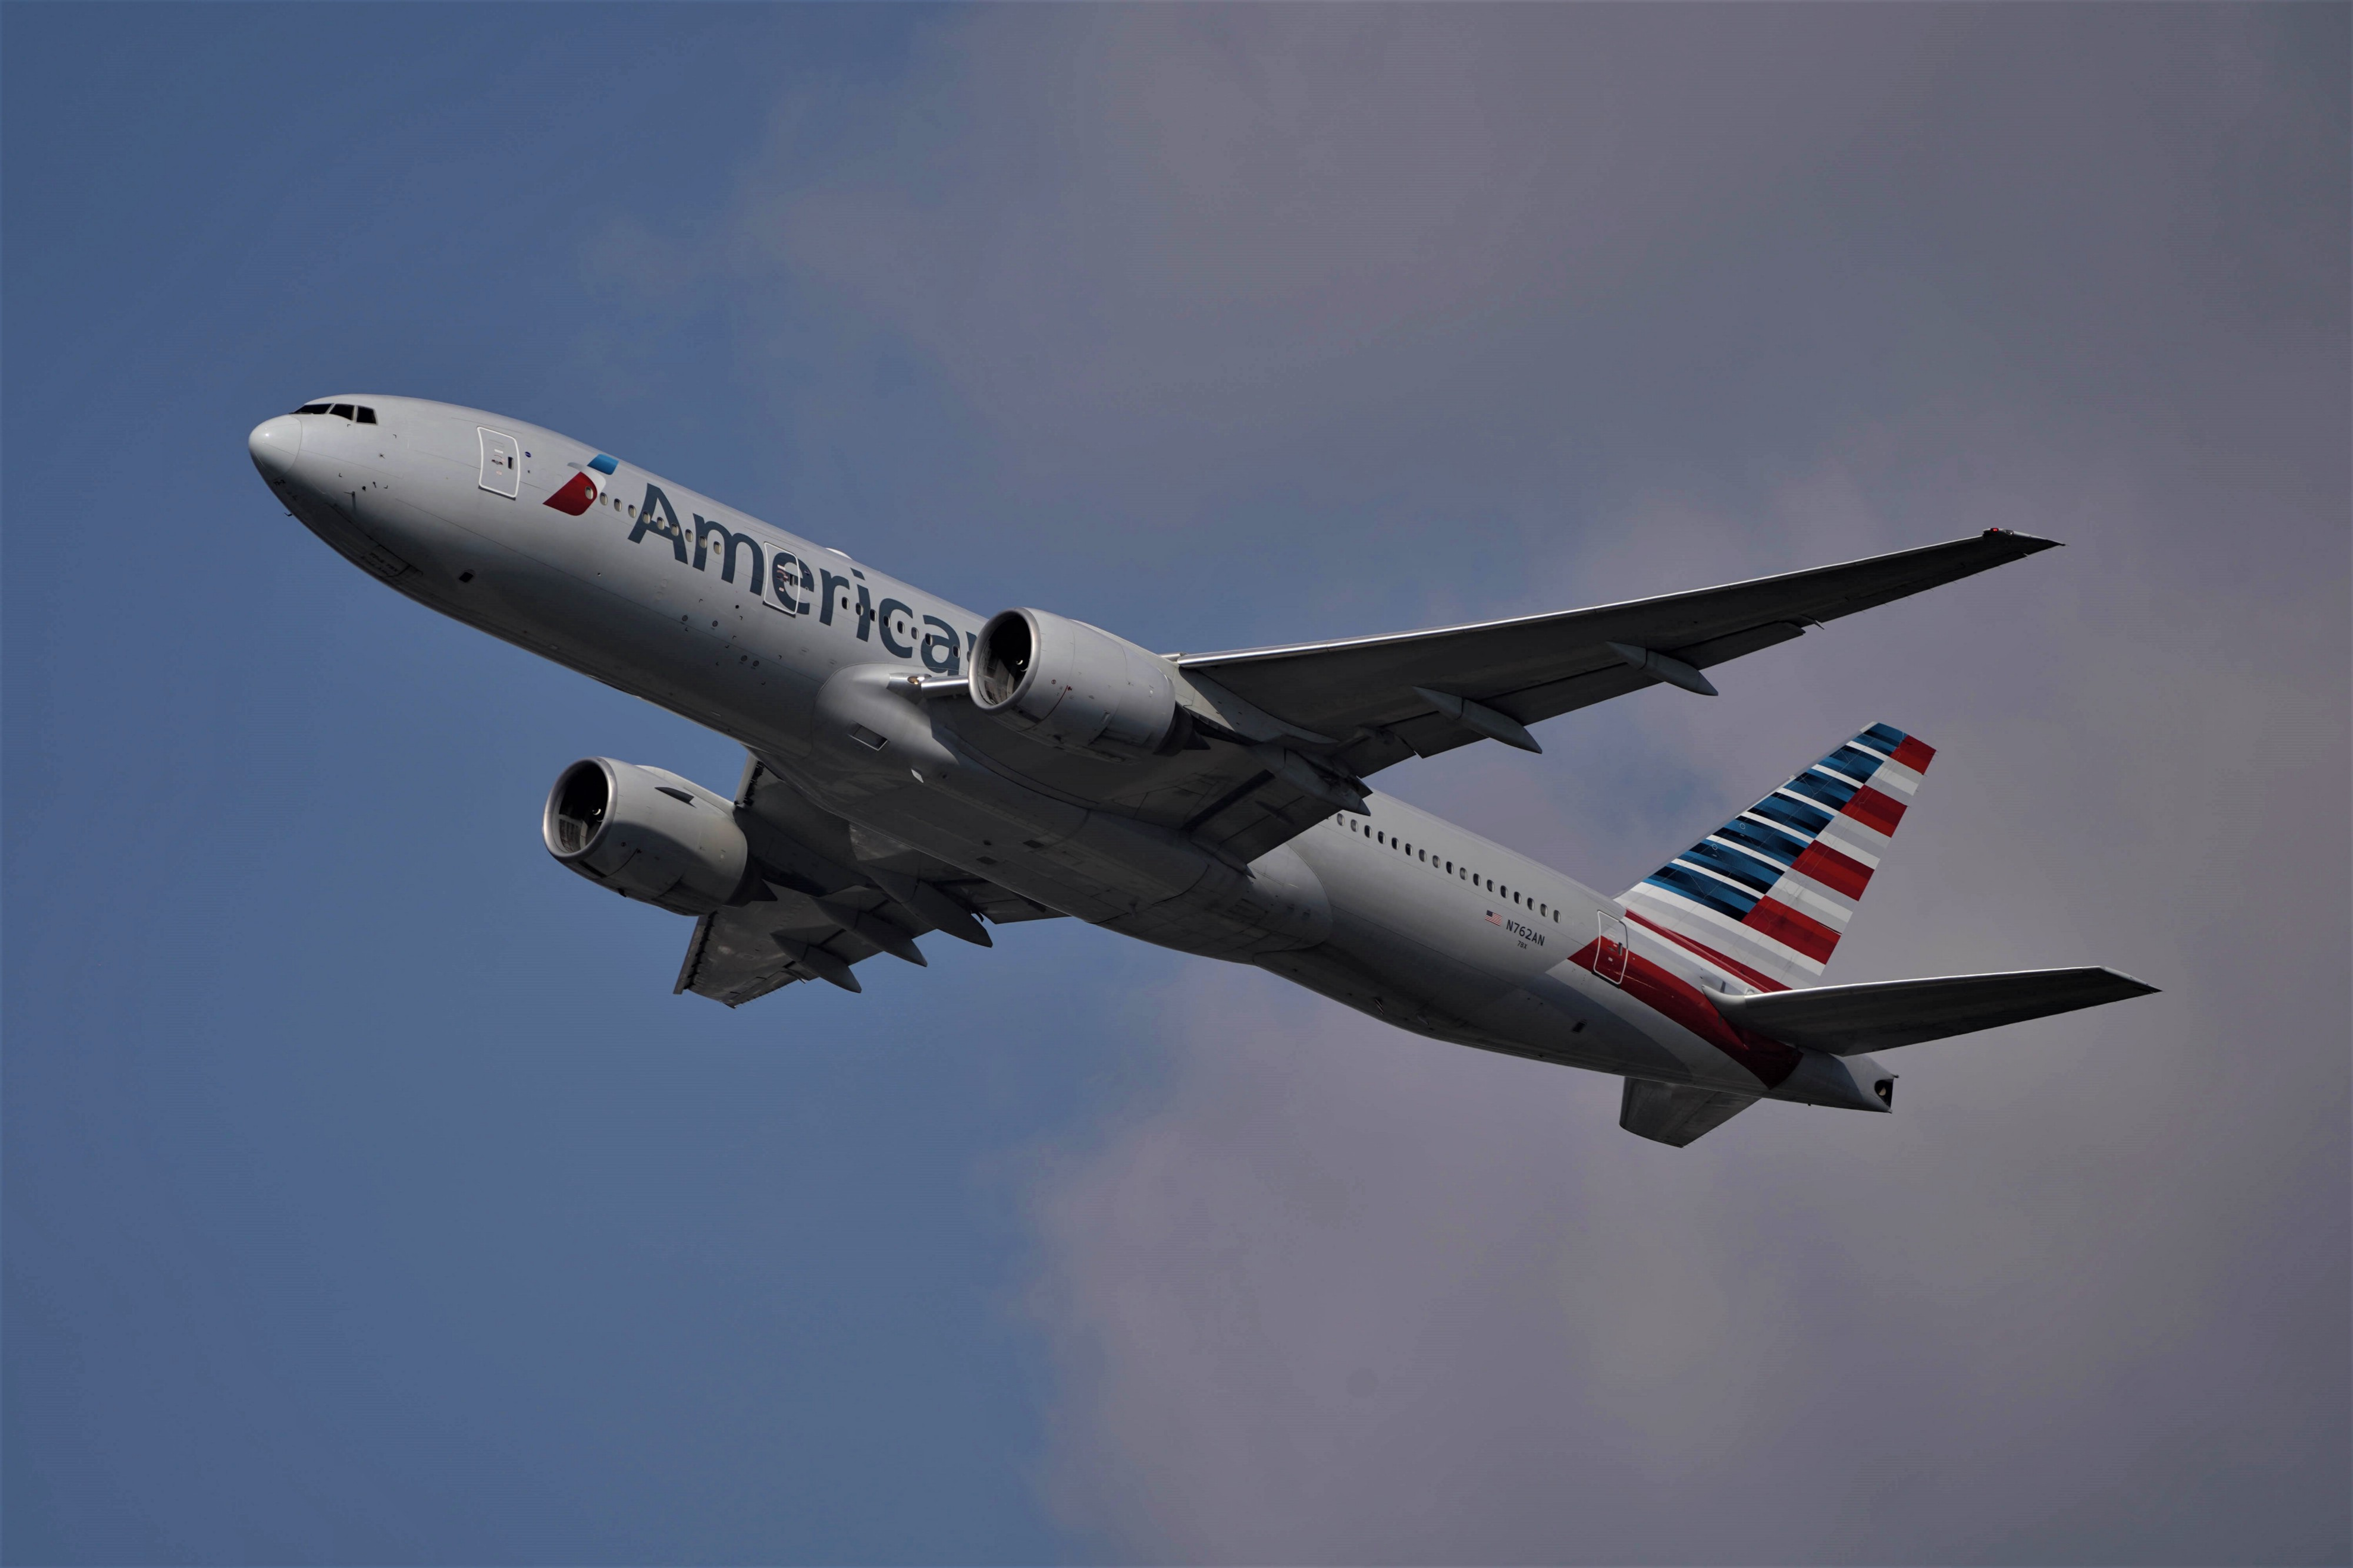 An American Airlines plane is seen flying through the air.